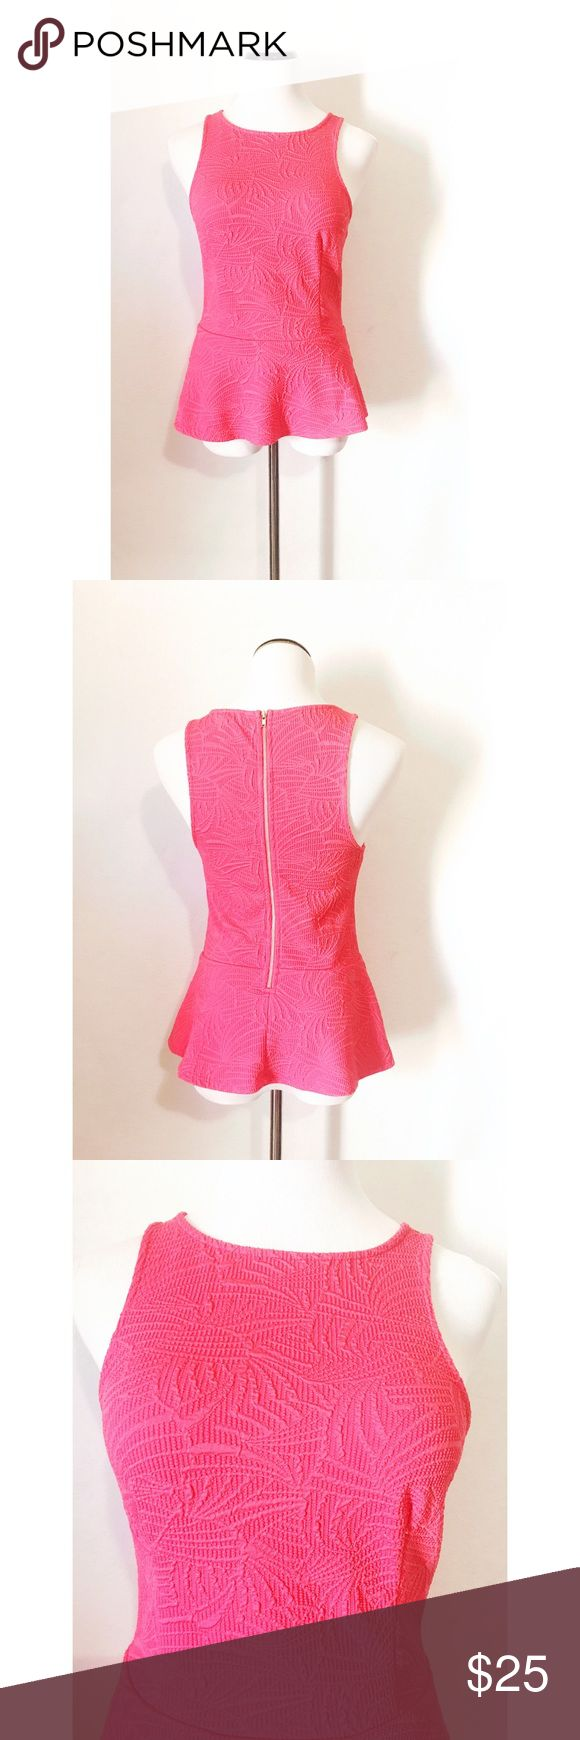 Express pink peplum top Super cute with zipper in the back! Size small! Excellent condition! Express Tops Blouses